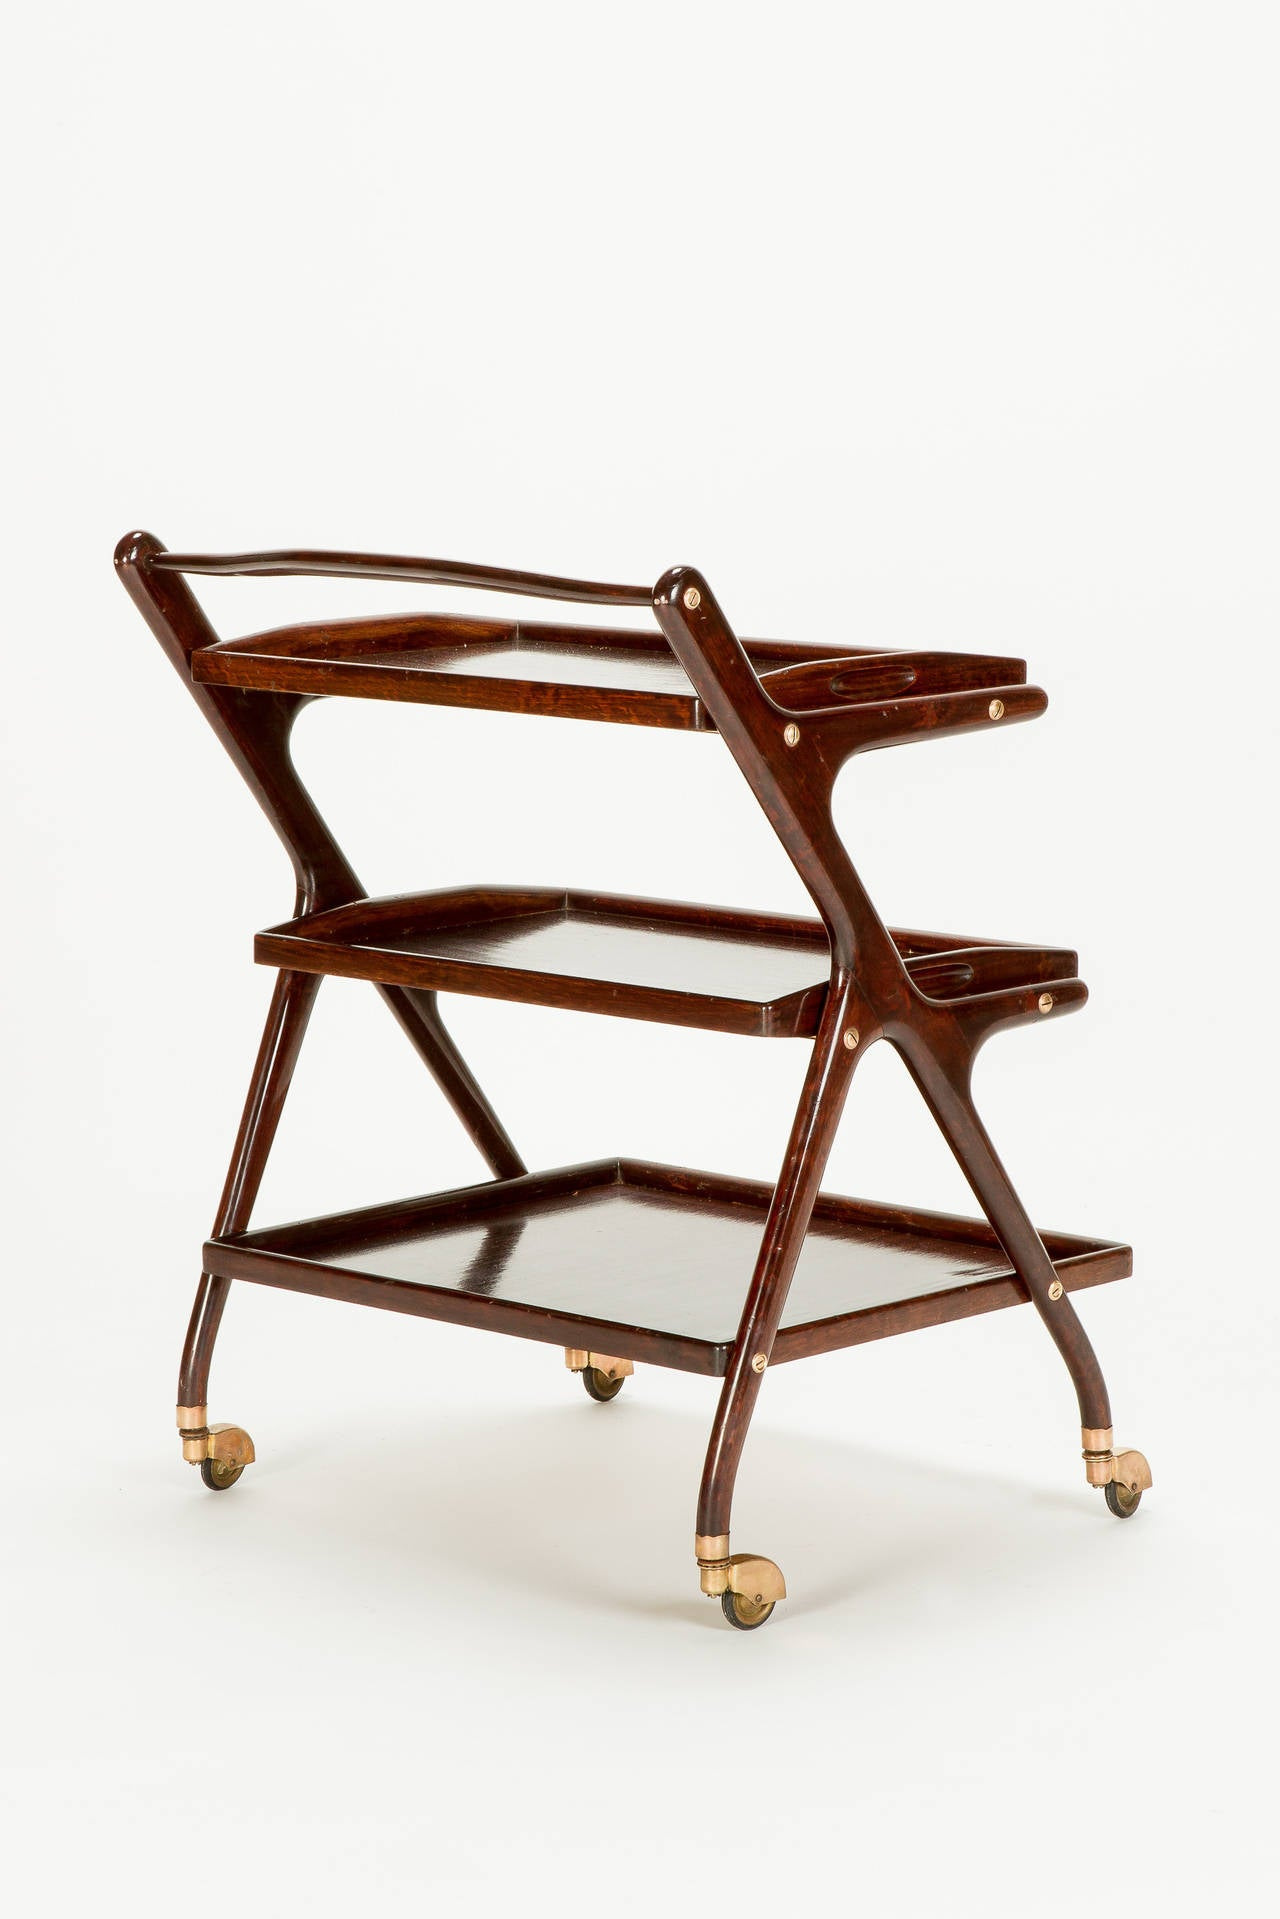 Italian Mahogany Serving Trolley by Cesare Lacca, 1950s In Good Condition In Basel, CH